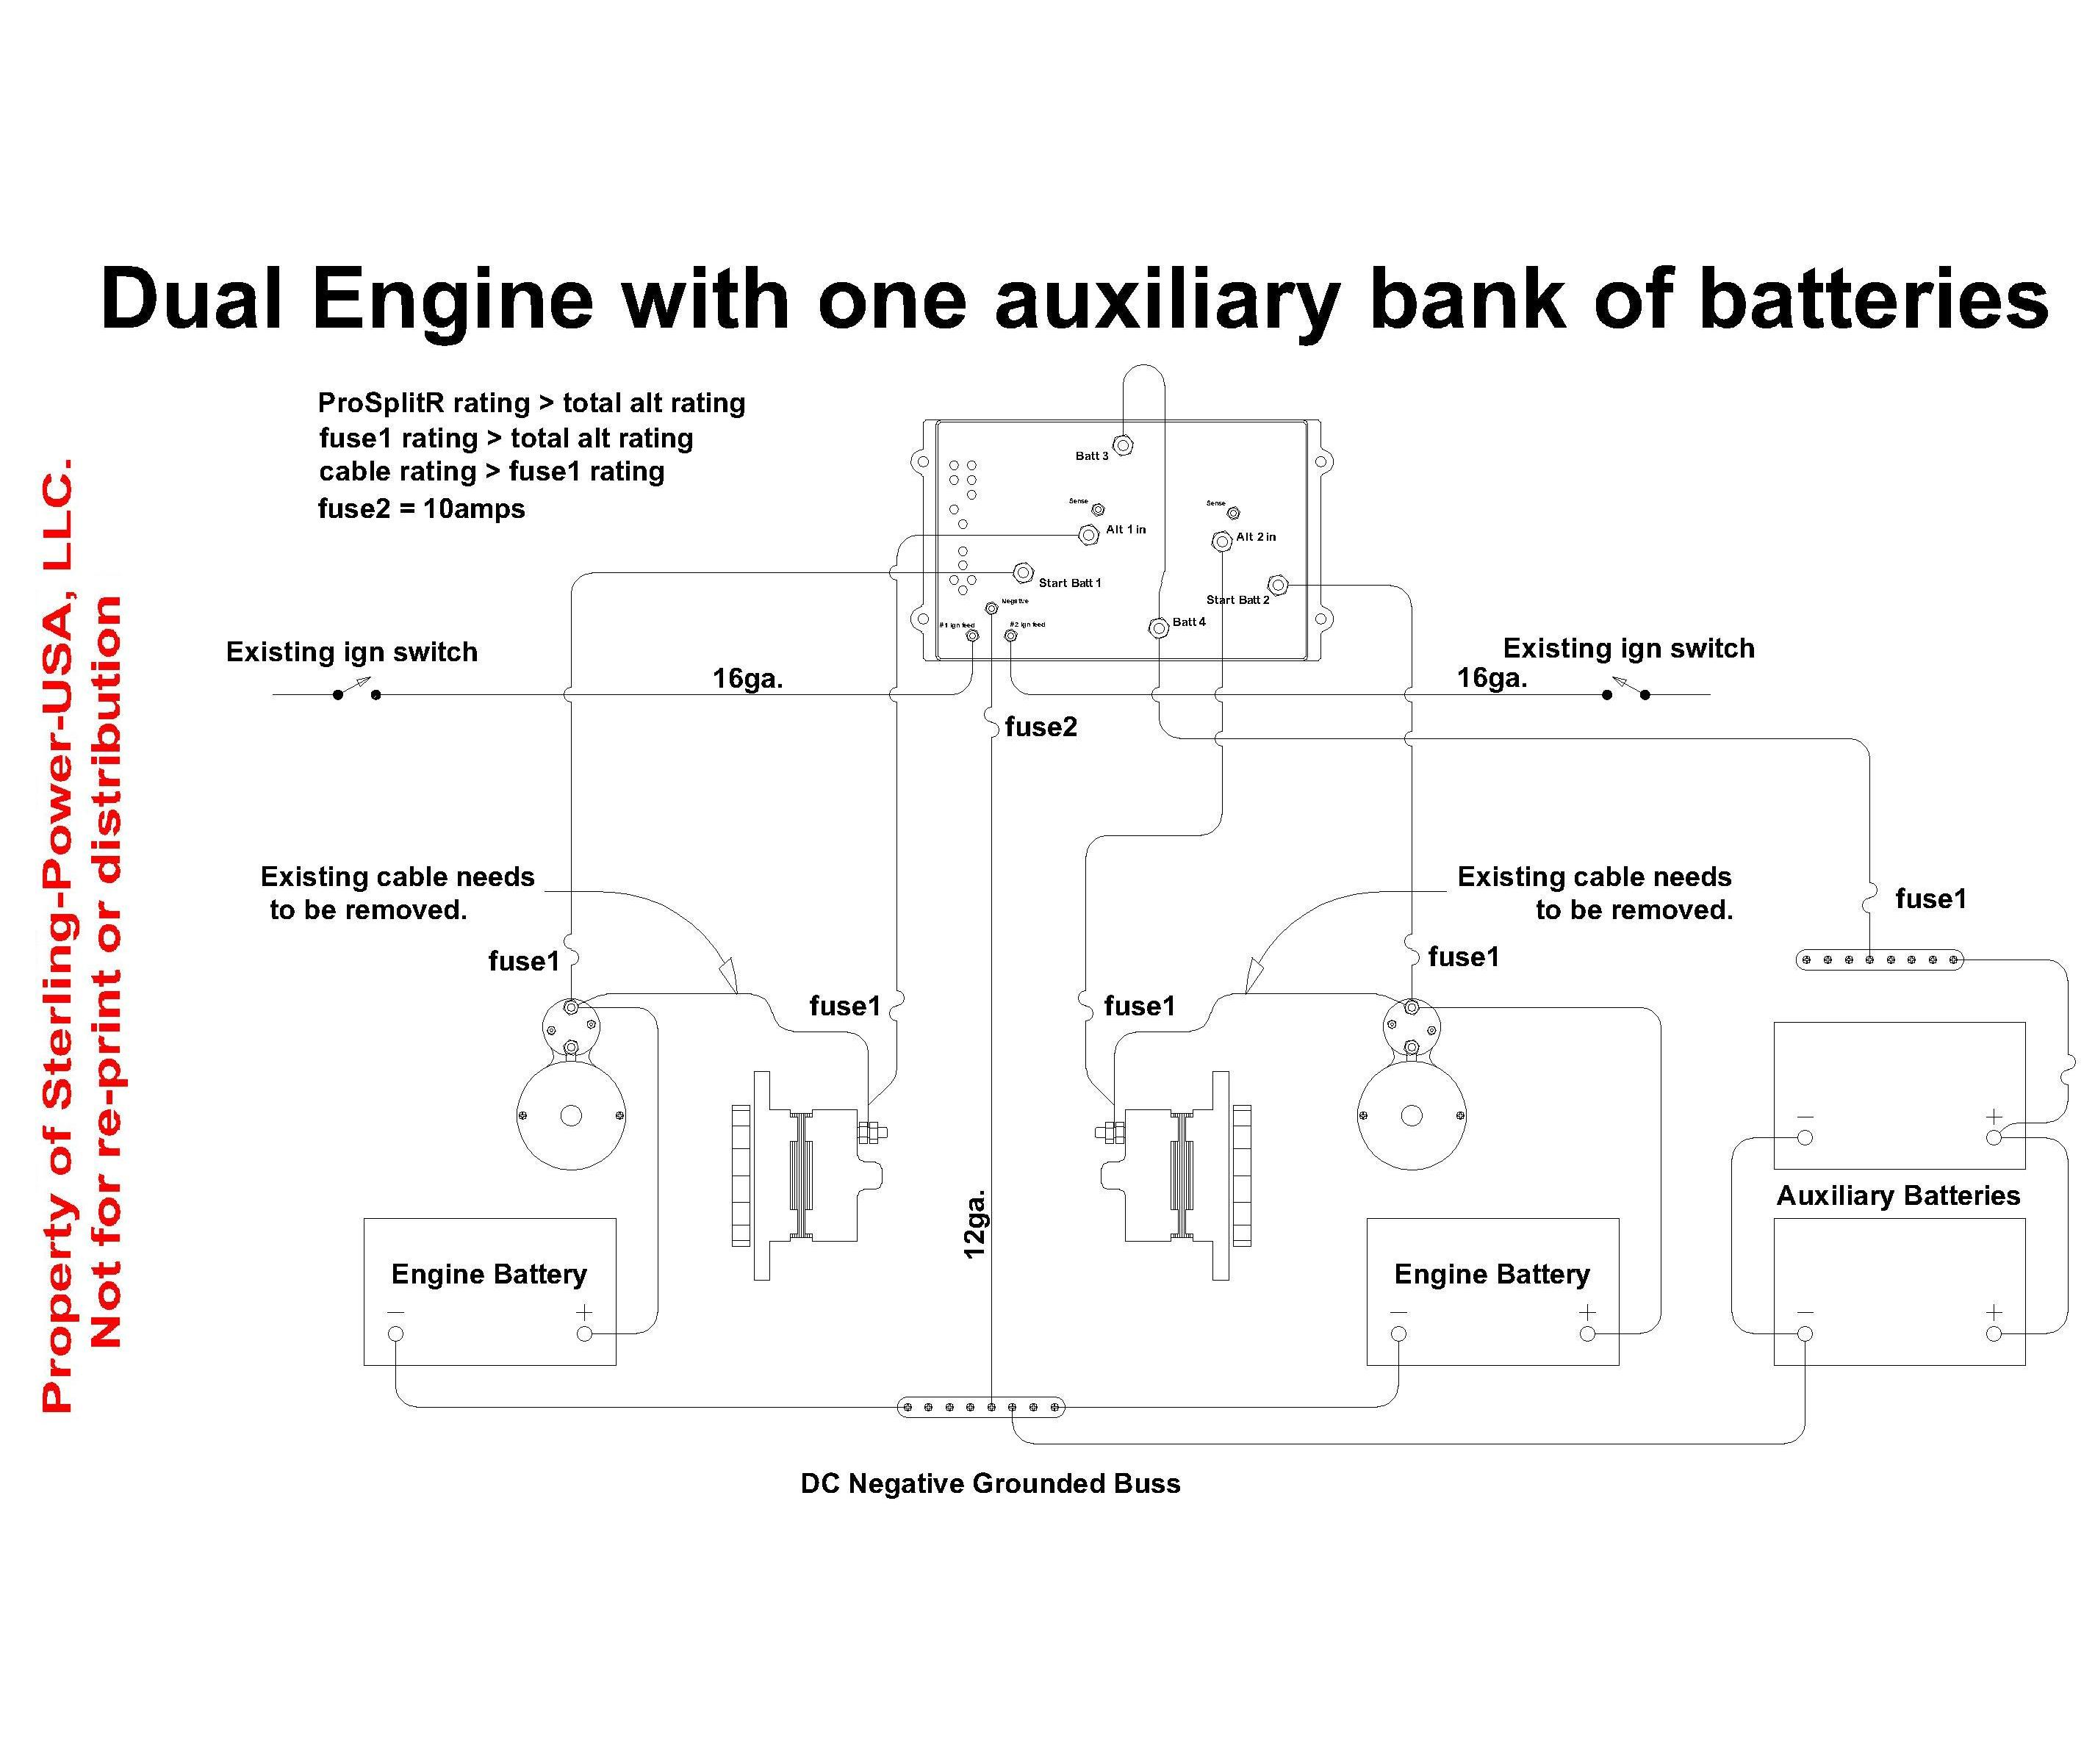 wiring diagrams \u0026 literature for pro charge ultra marine battery 30 Amp Breaker Wiring Diagram wiring diagram for a sterling power prosplit r zero drop marine battery isolator with 2 input and 4 outputs